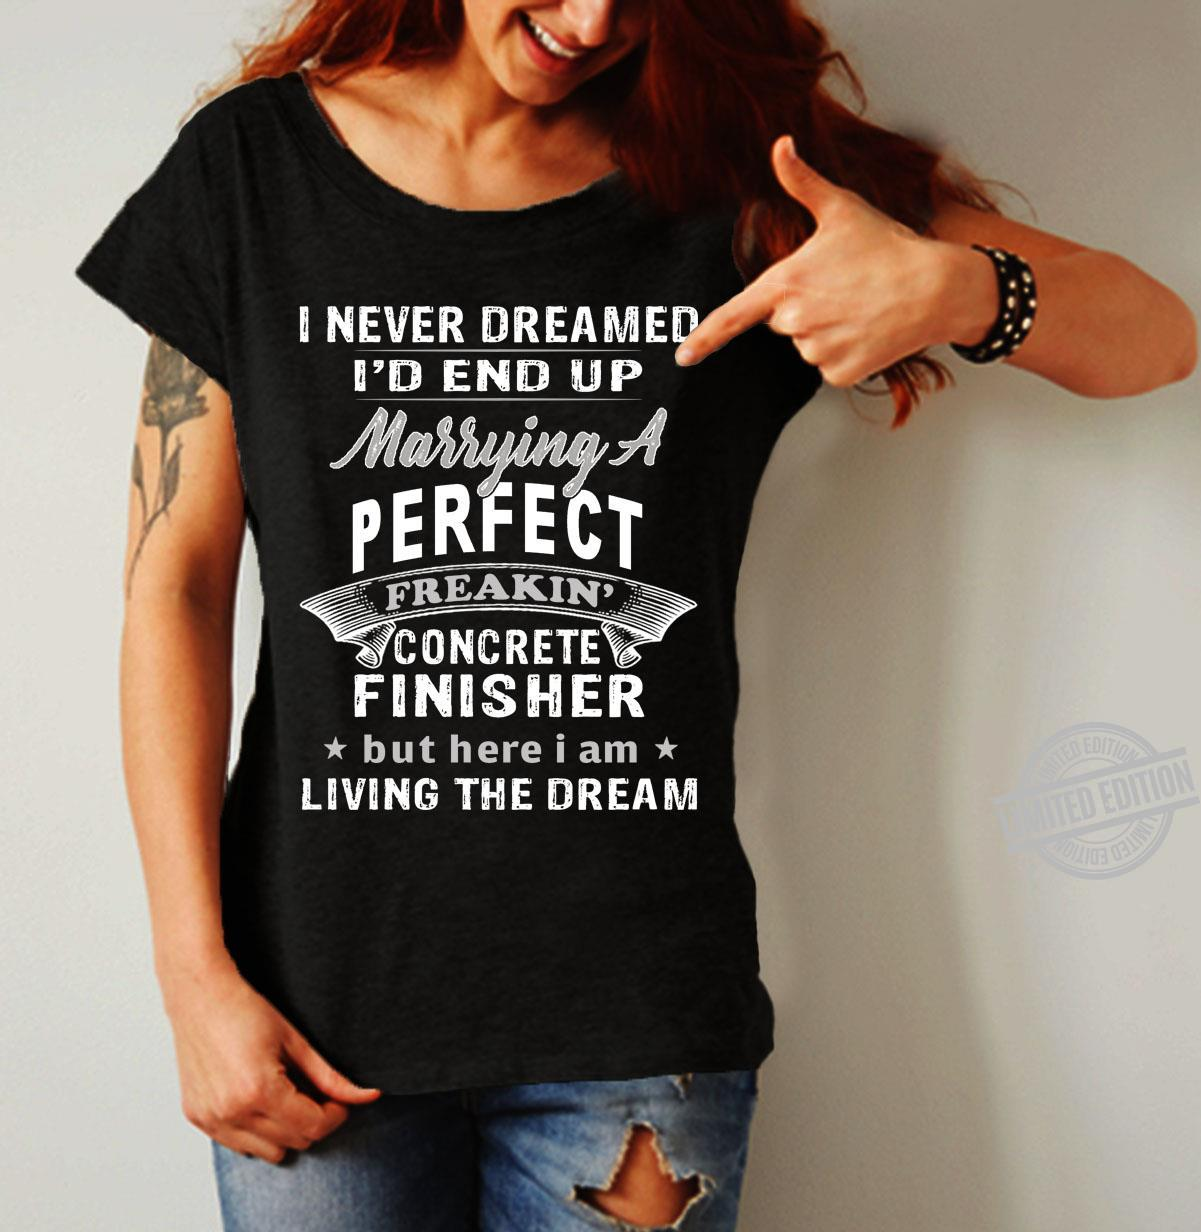 I Never Dreamed I'd End Up Marrying A Perfect Freakin' Concrete Finisher But Here I Am Living The Dream Shirt